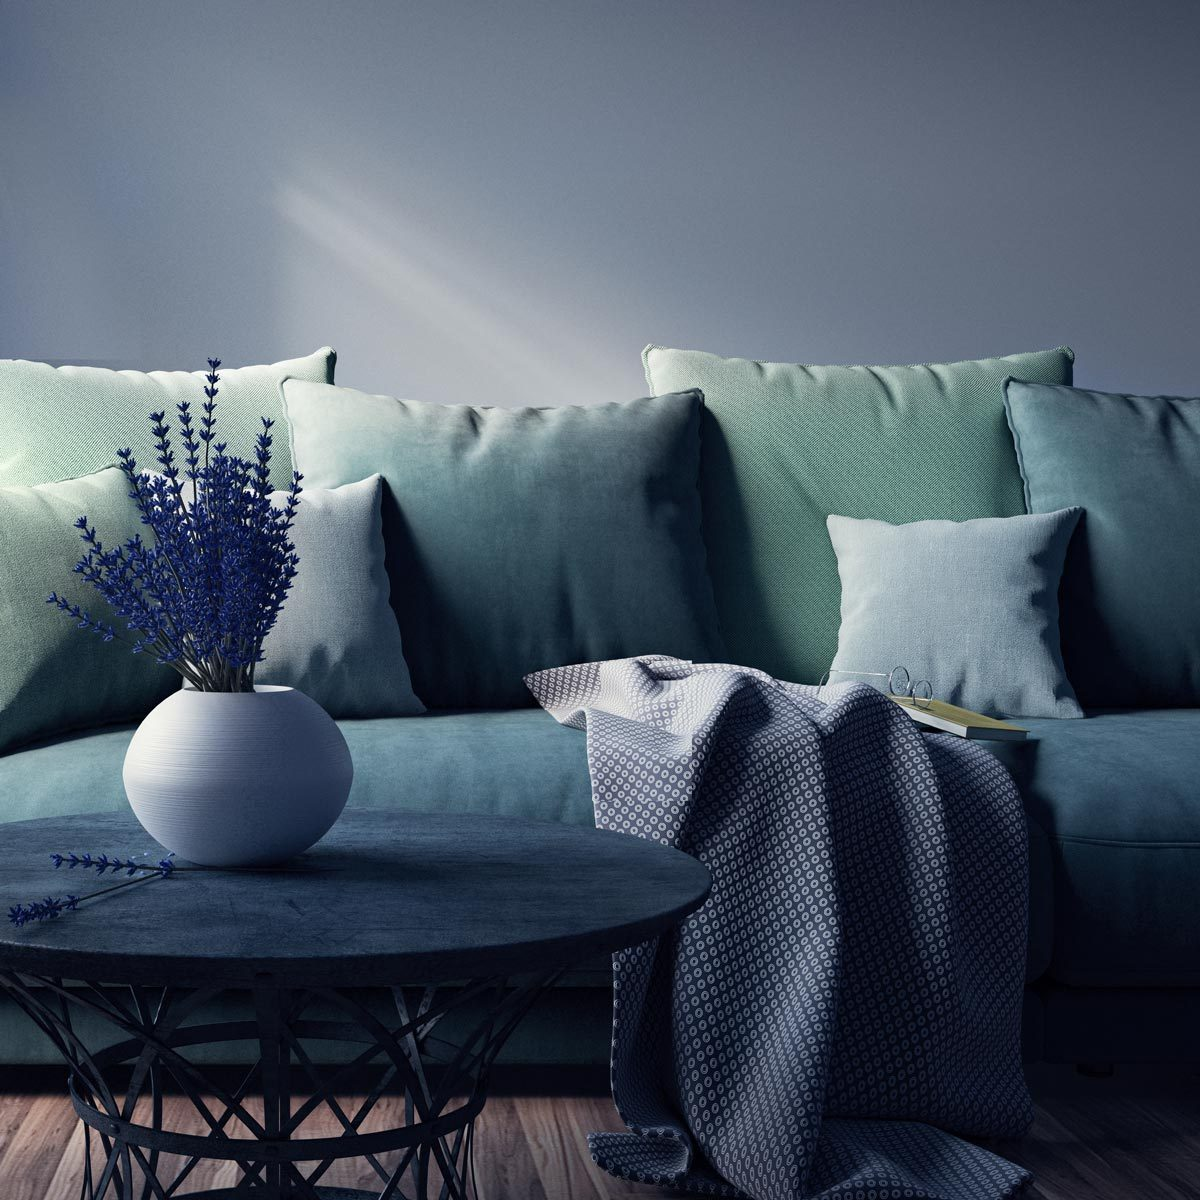 Ten Best Ways To Arrange Pillows On A Couch Family Handyman